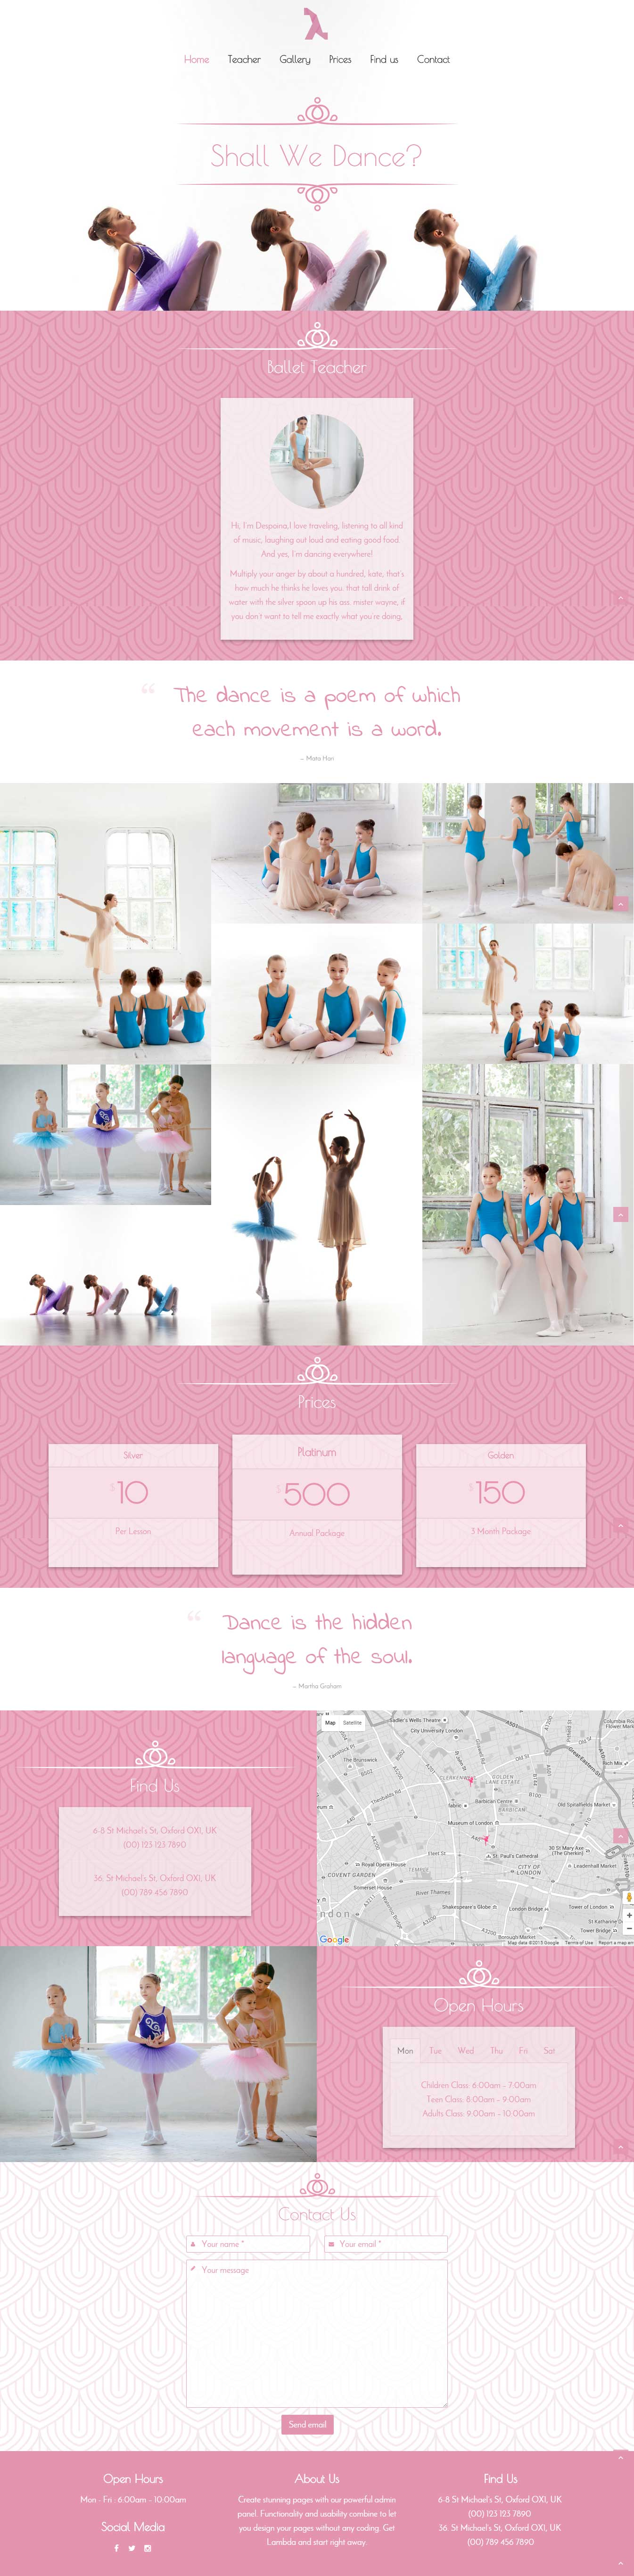 Dance School---Just-another-Oxygenna-WP-Dev-site